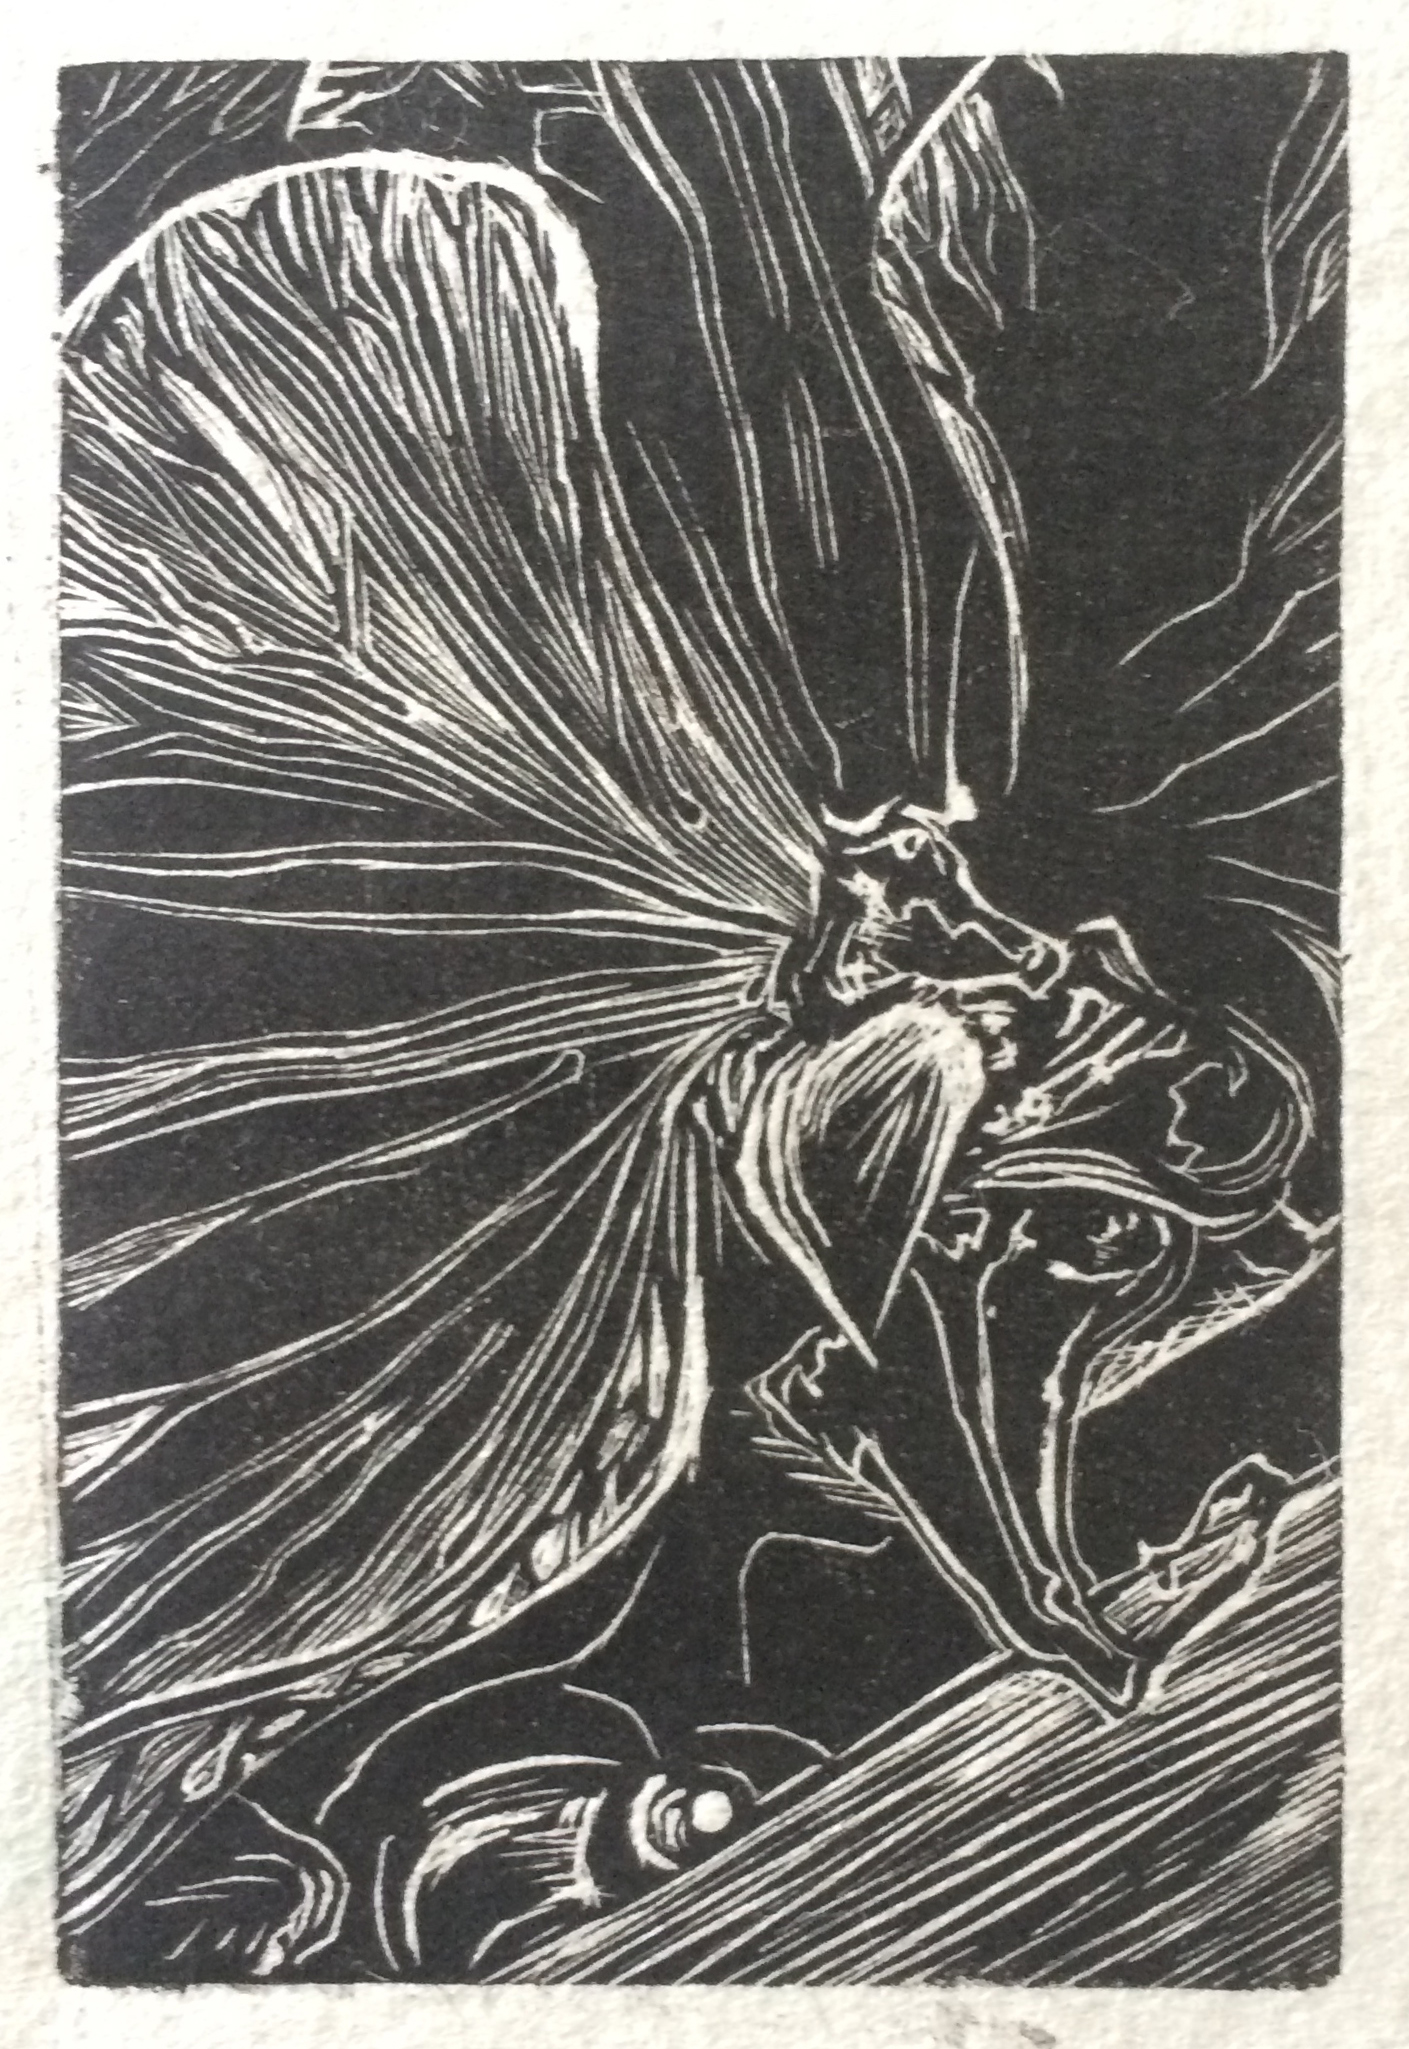 unfold orchid wood engraving 2 inces by 3 inches